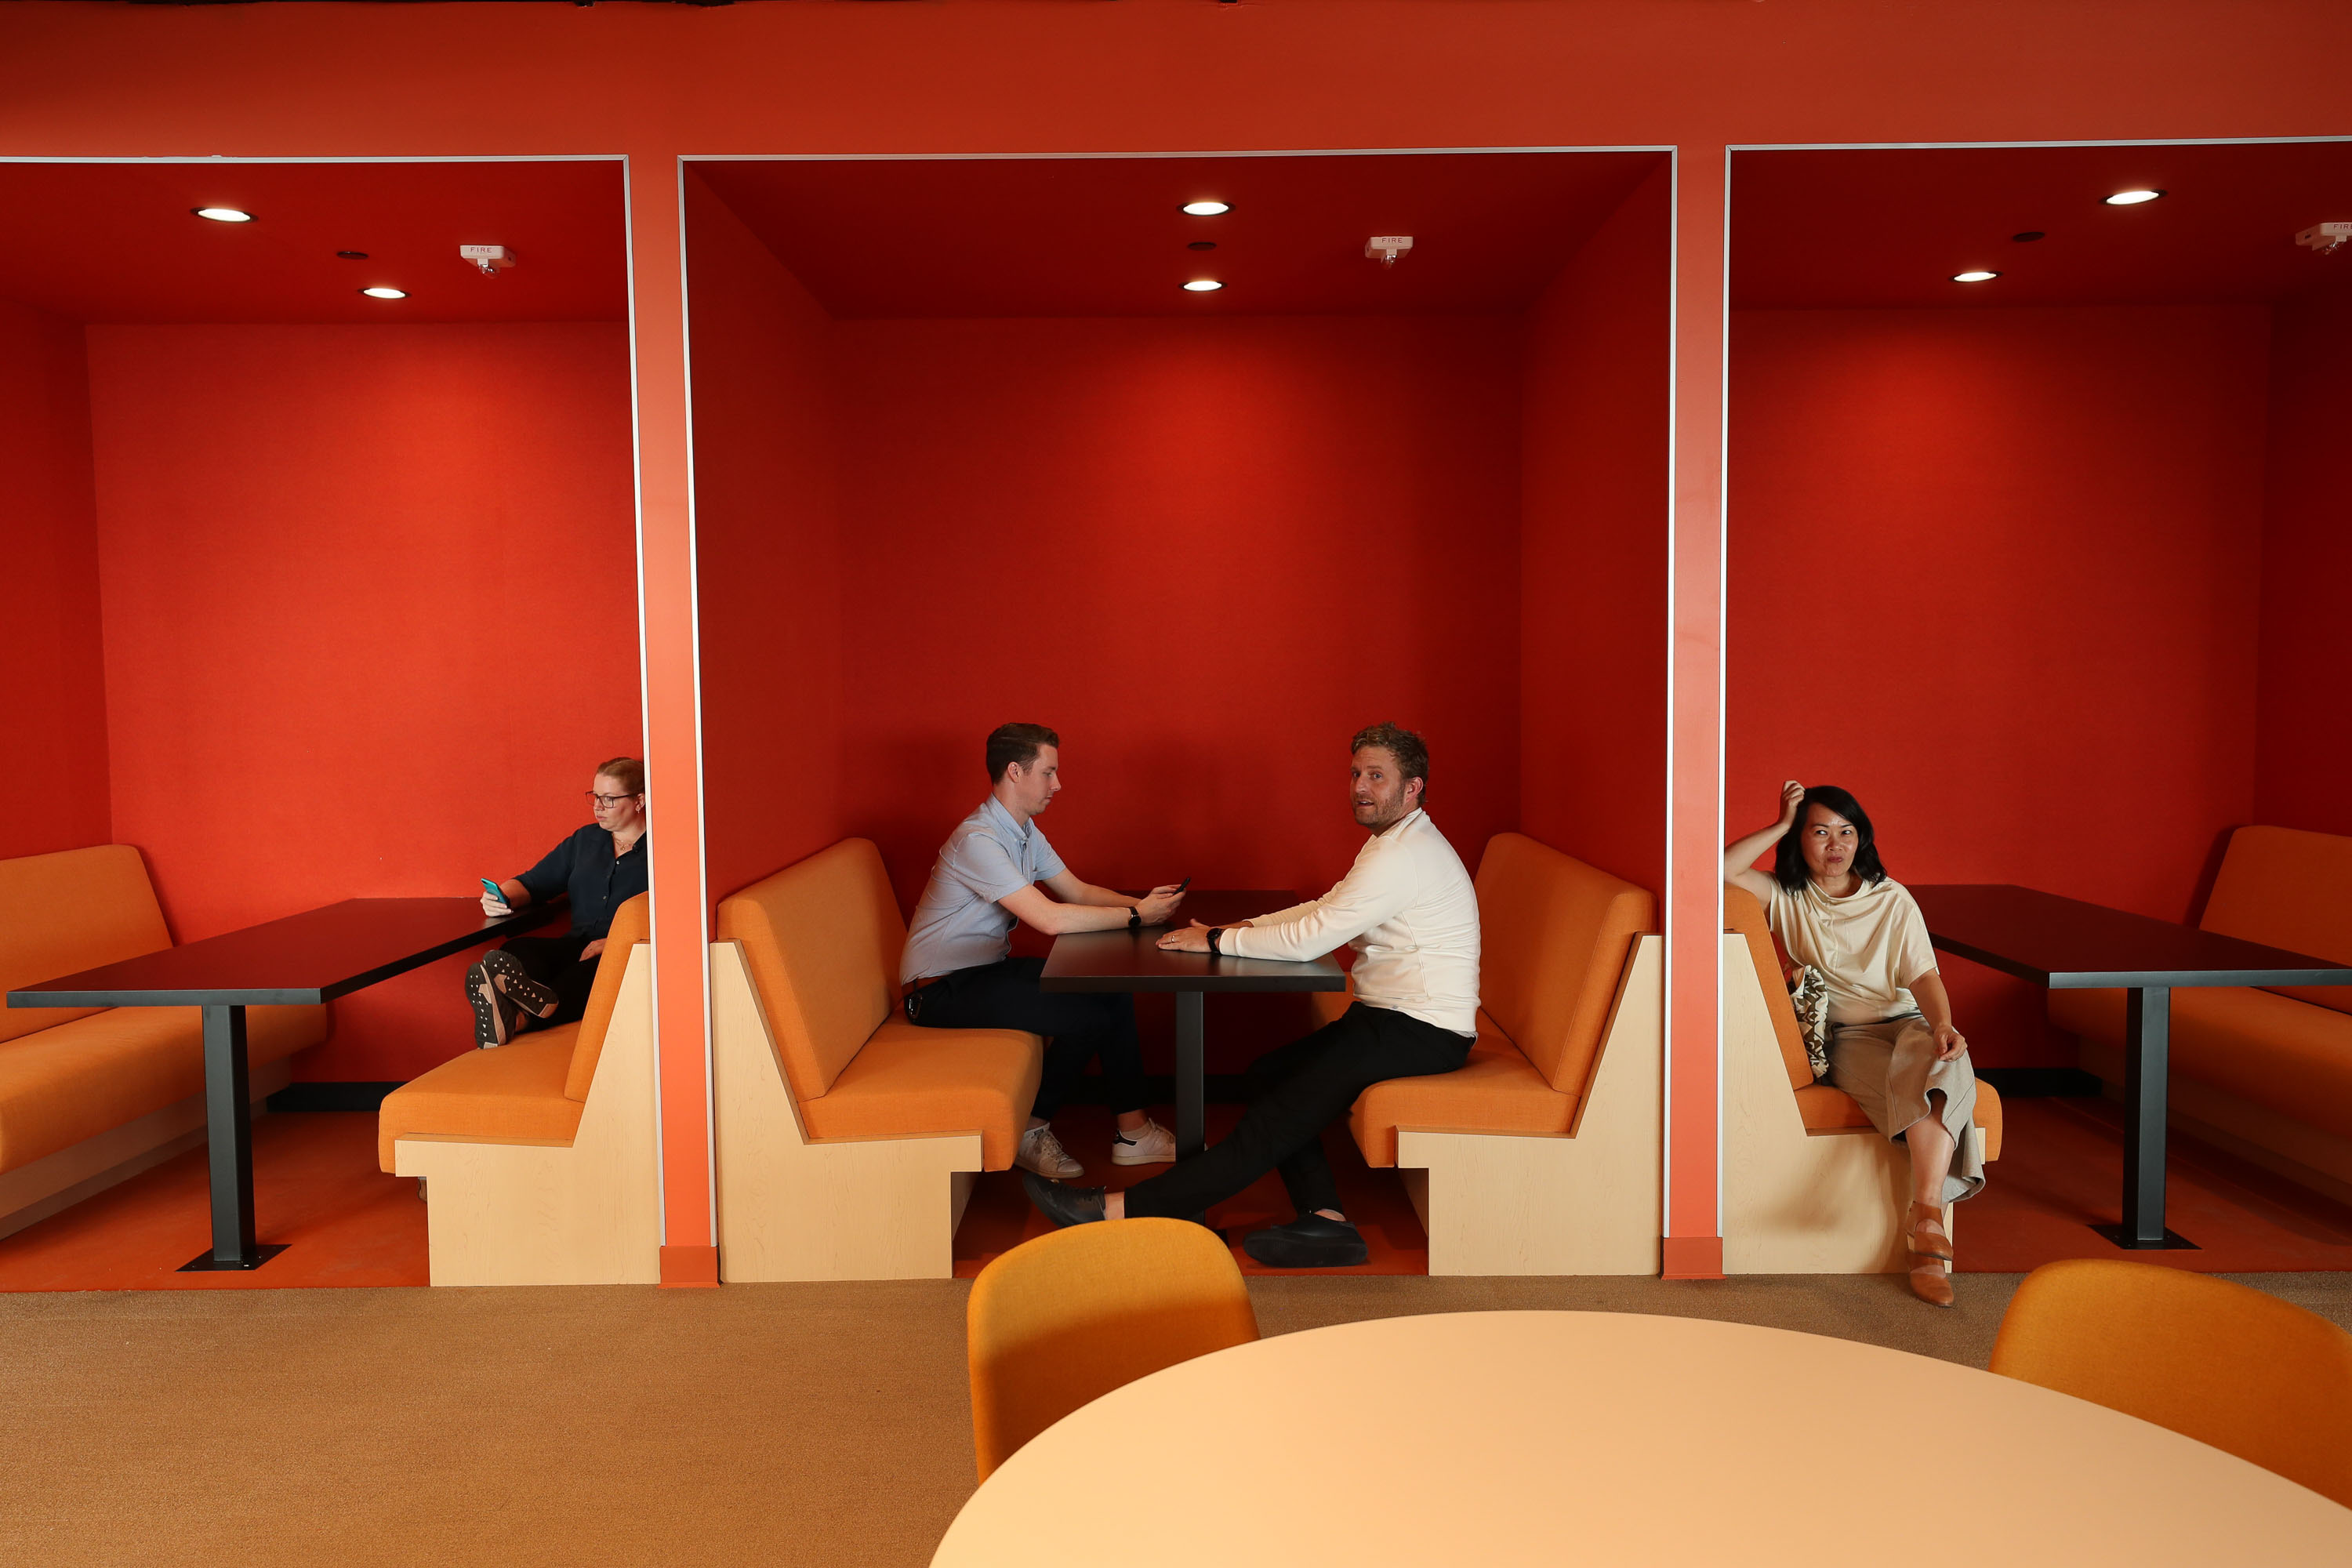 people sitting in orange booth seating with red walls